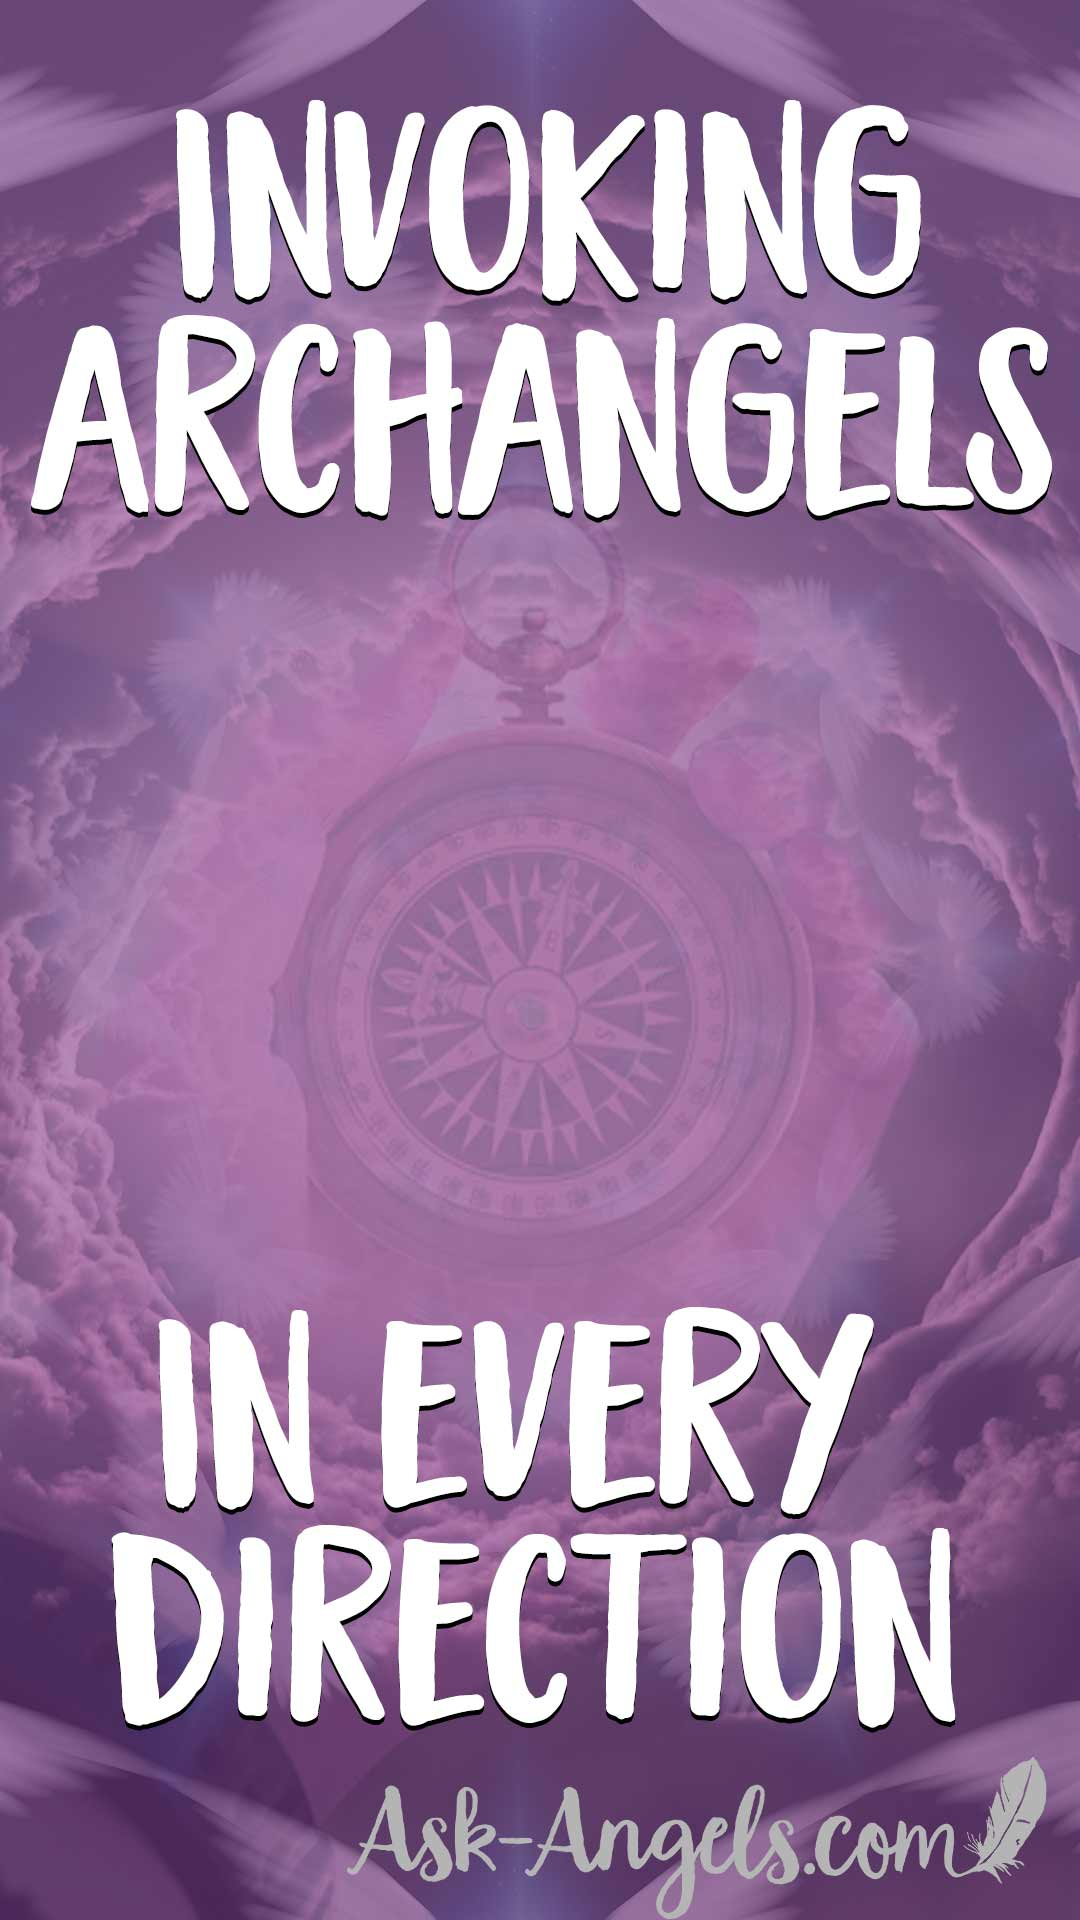 Archangel invocation - Invoking Archangels in Every Direction.